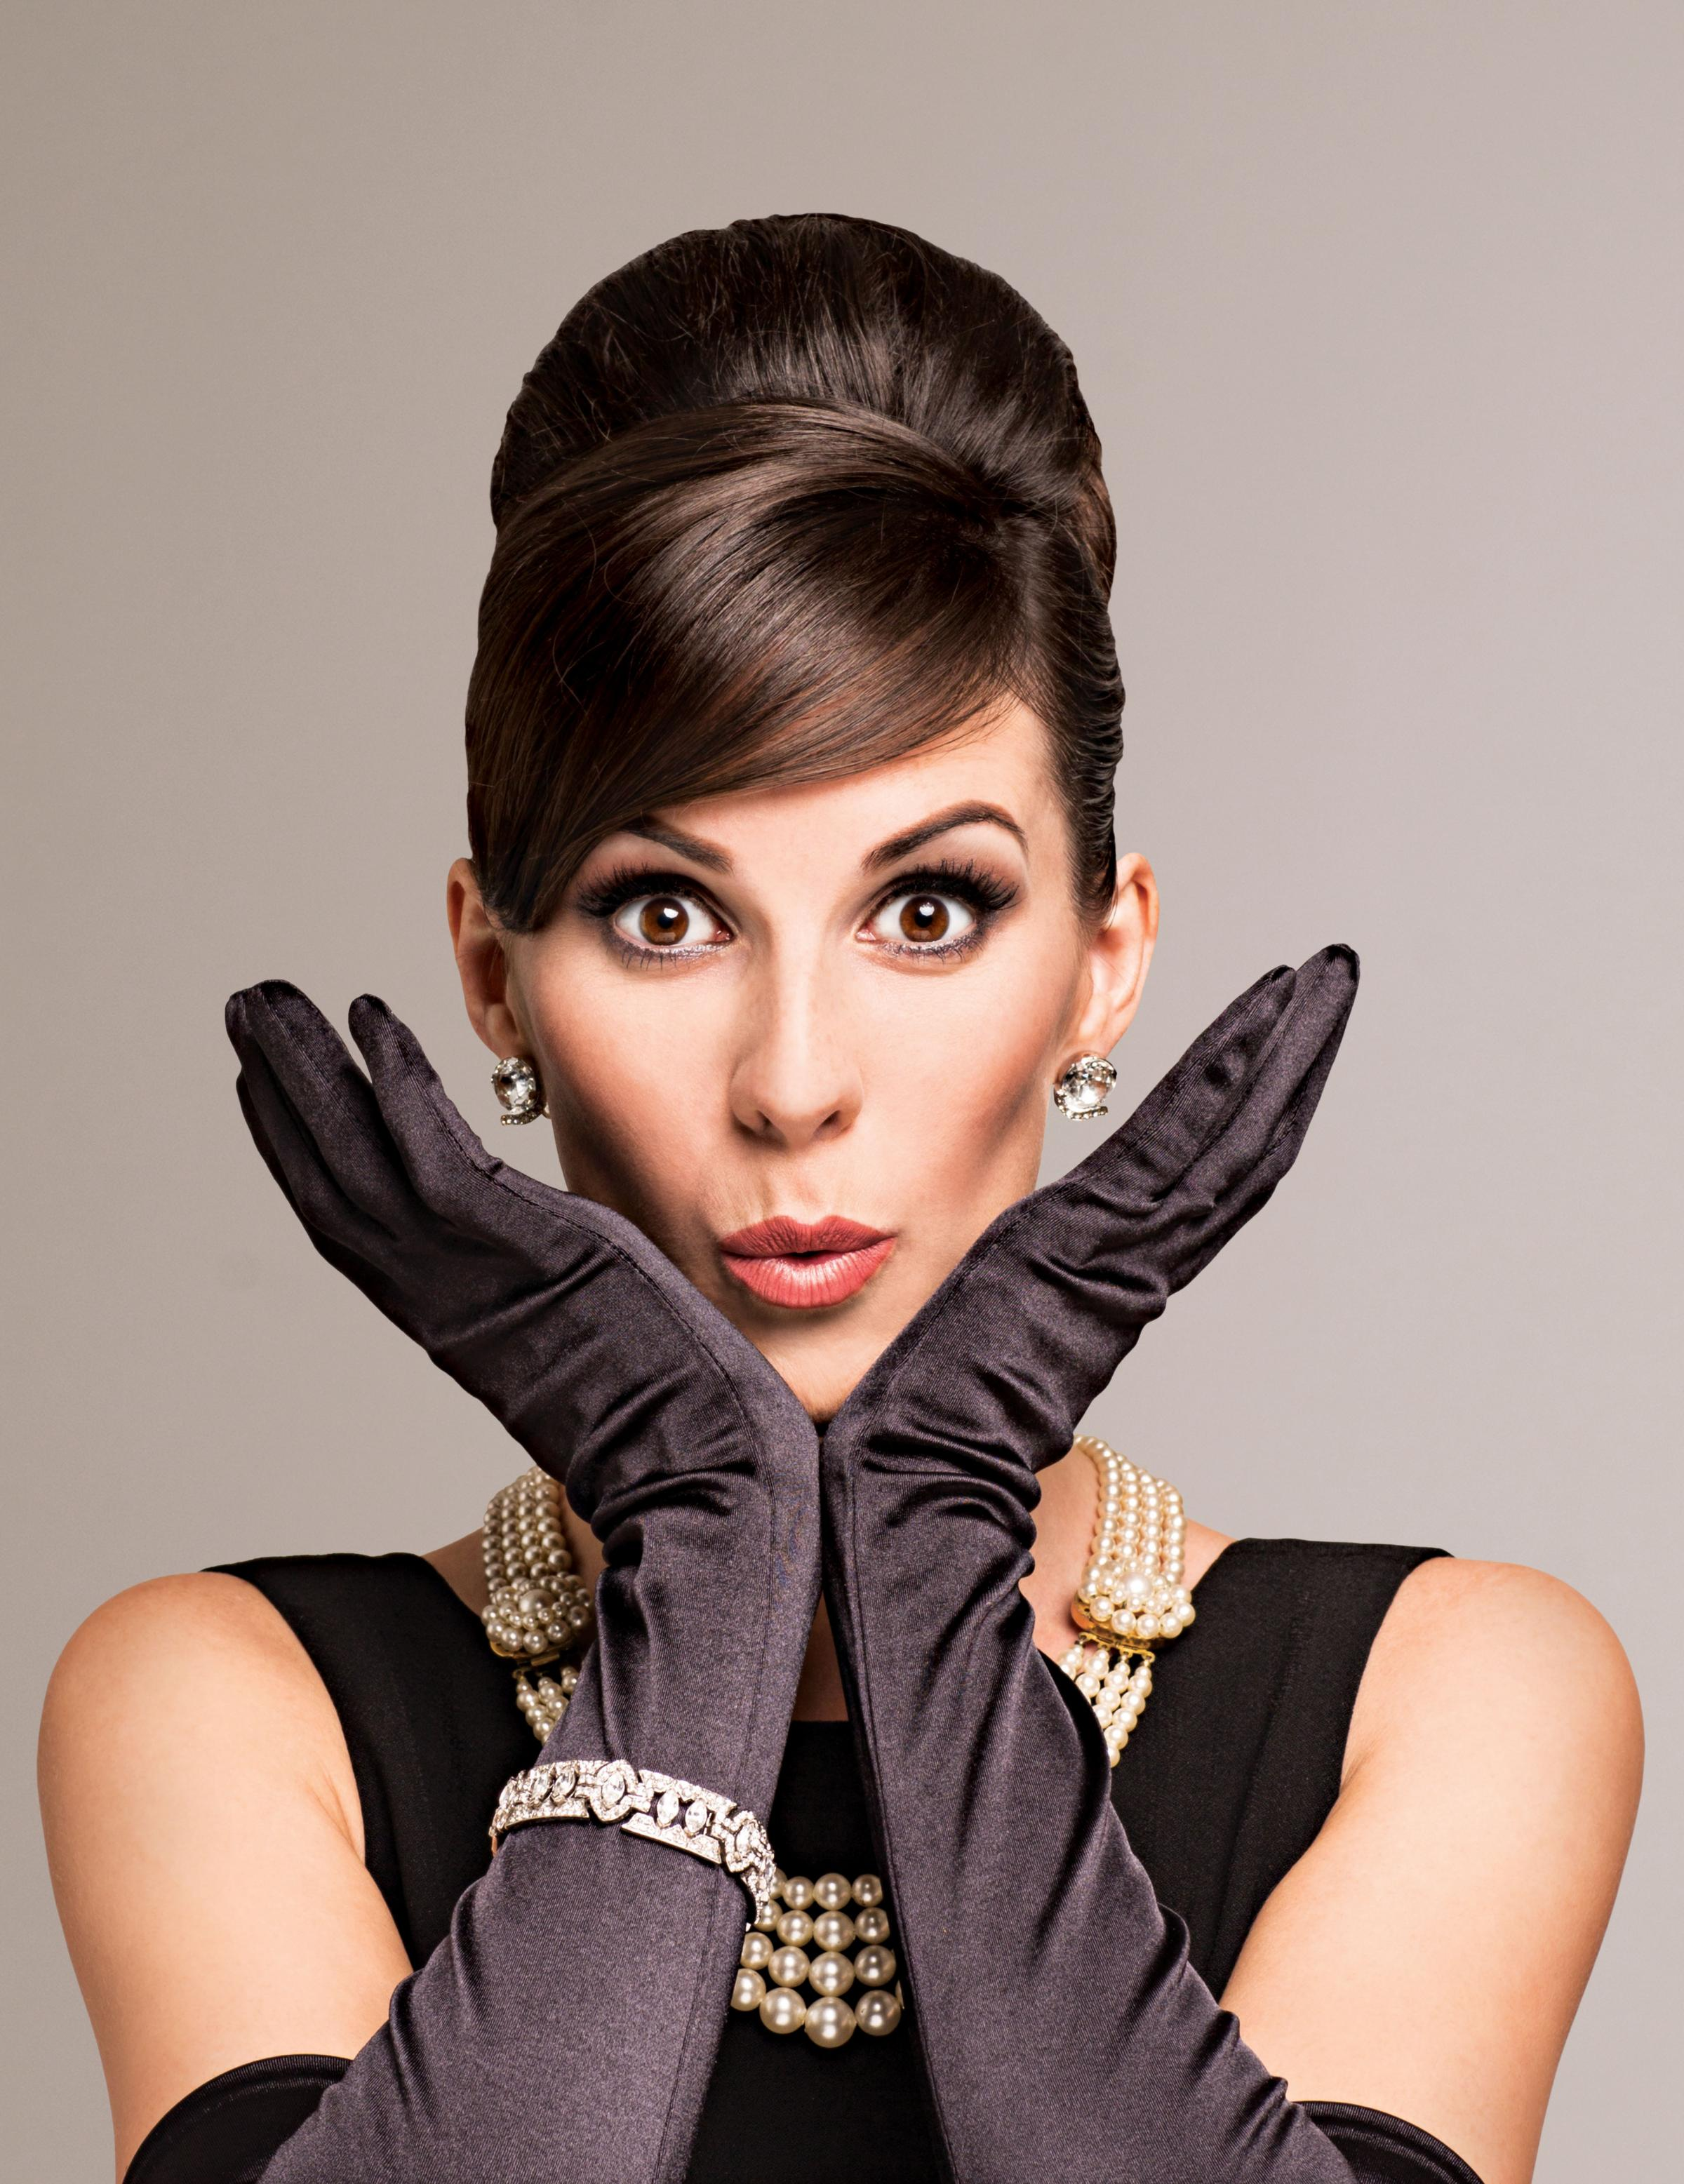 Verity Rushworth in Breakfast At Tiffany's